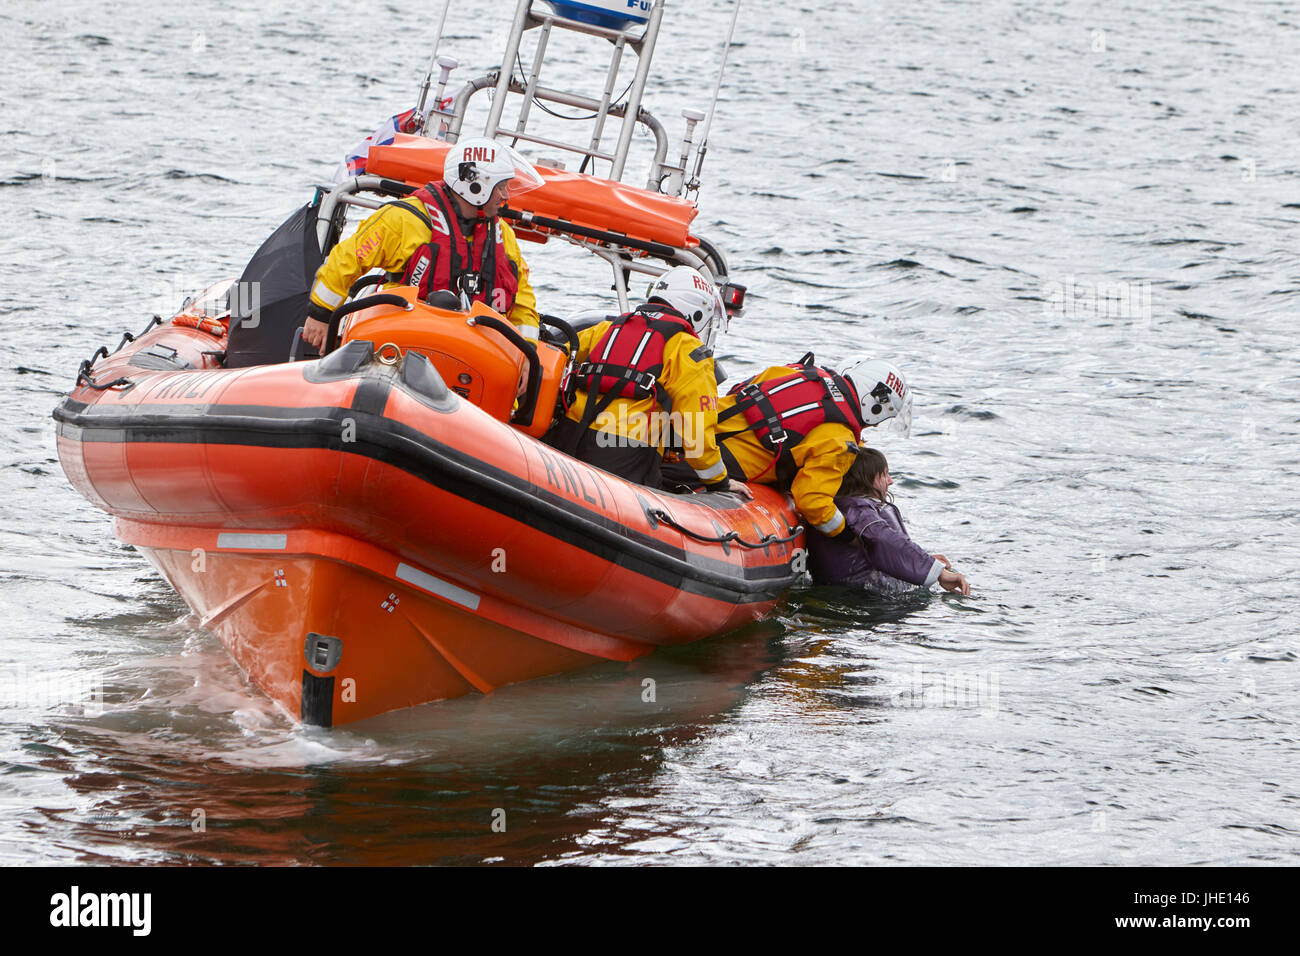 bangor rnli lifeboat jessie hillyard on safety demonstration recovering man from the sea northern ireland - Stock Image